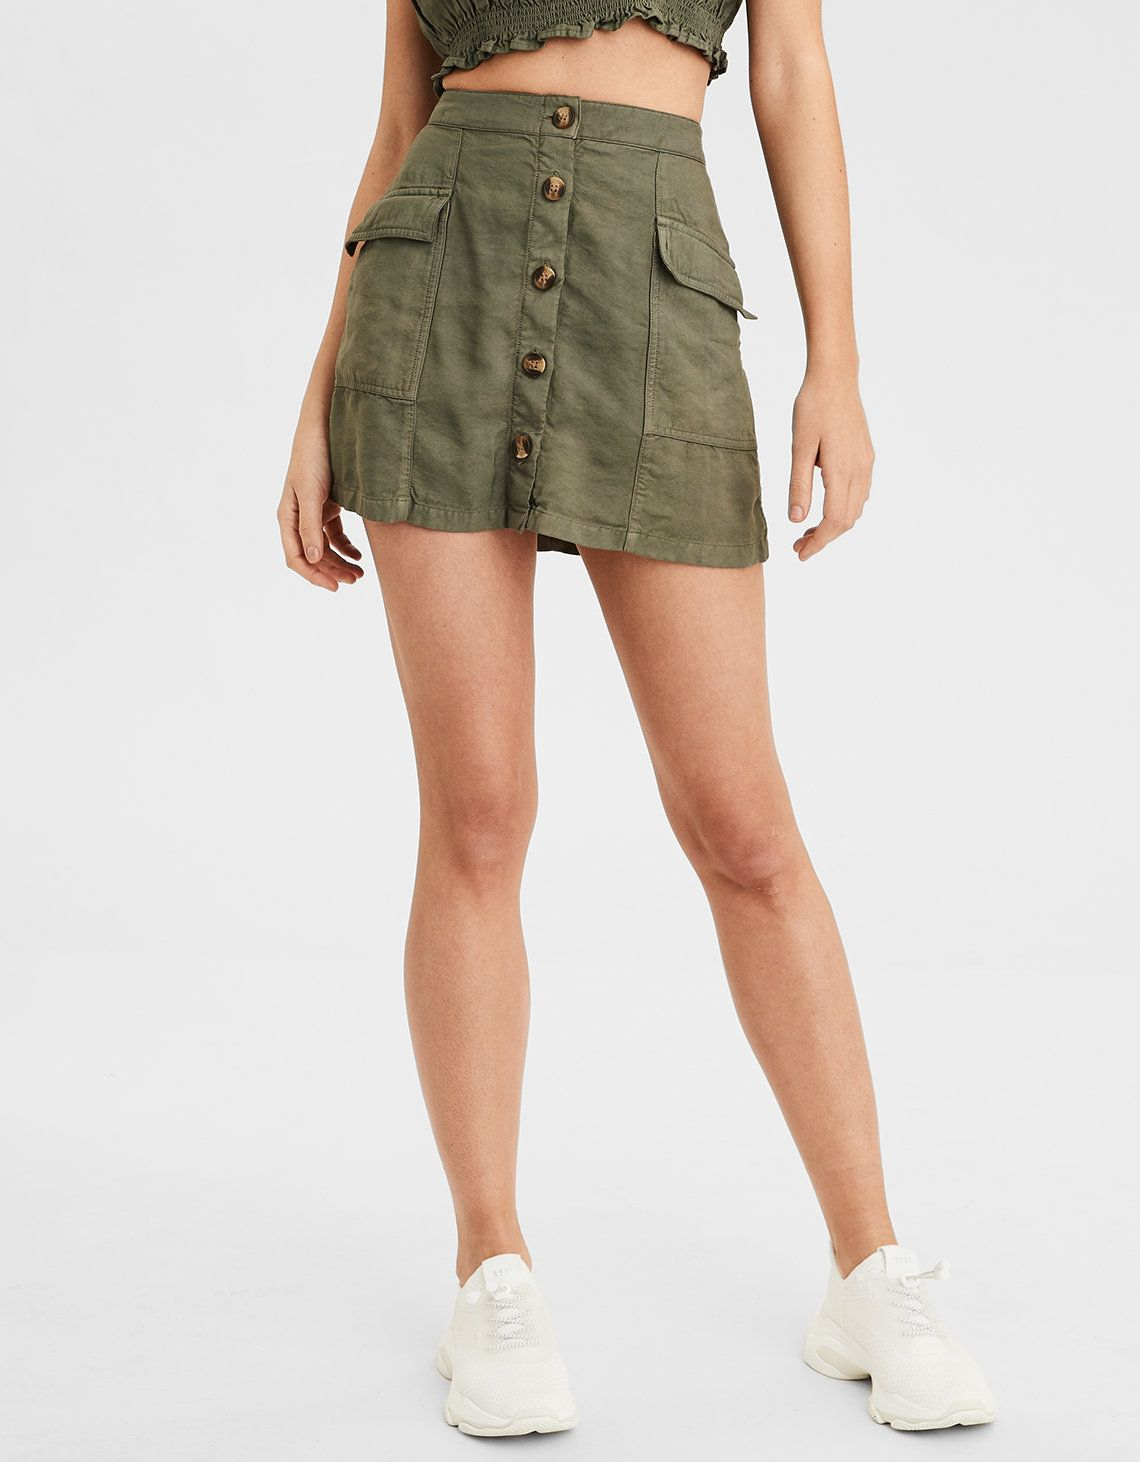 fafecbc57a2889 AE High-Waisted Utility Skirt in 2019 | Skirts | Skirts, Mens ...